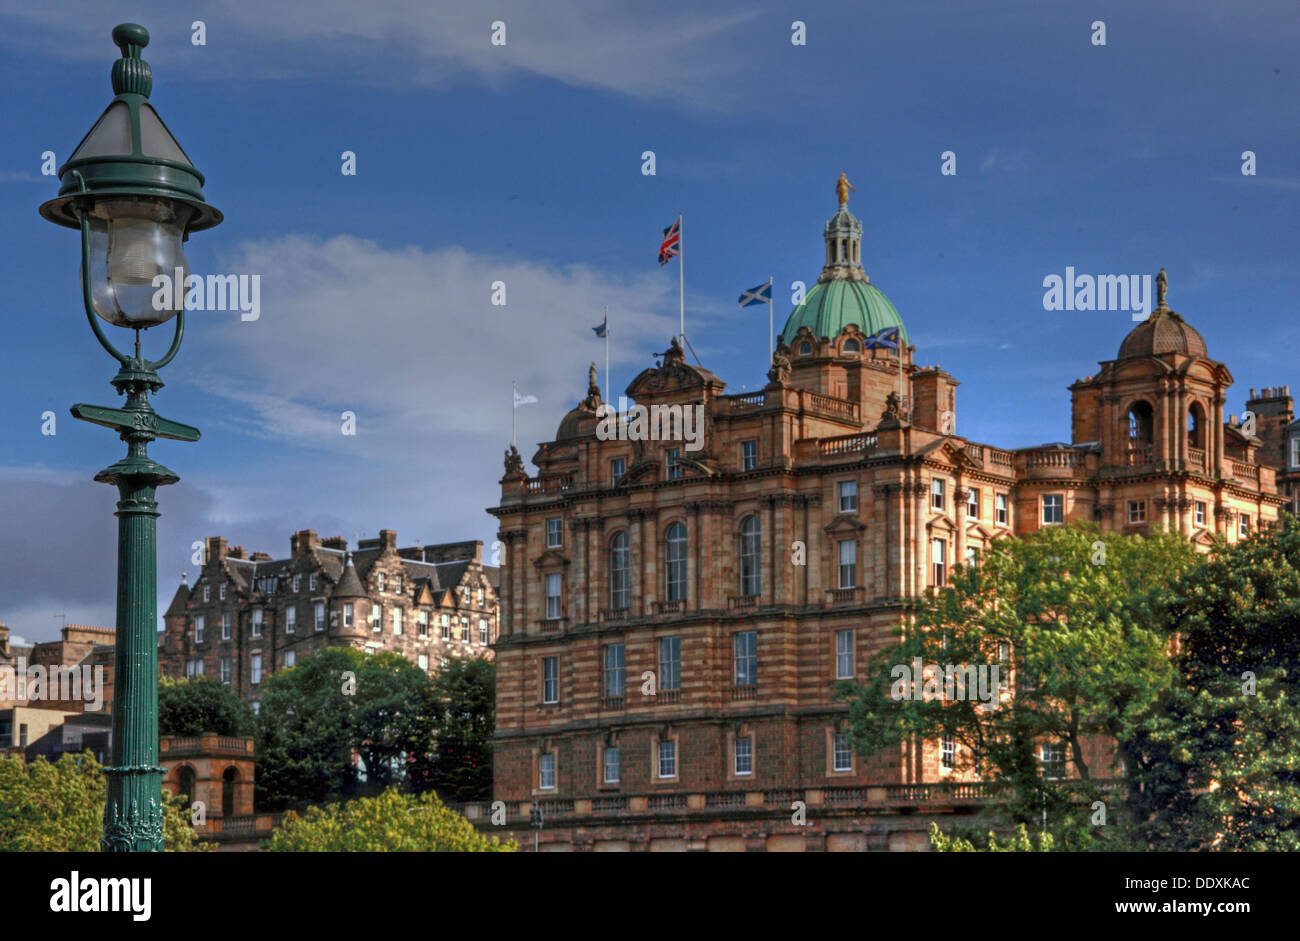 Bank of Scotland office headquarters, The Mound, Edinburgh, Scotland, UK - Stock Image